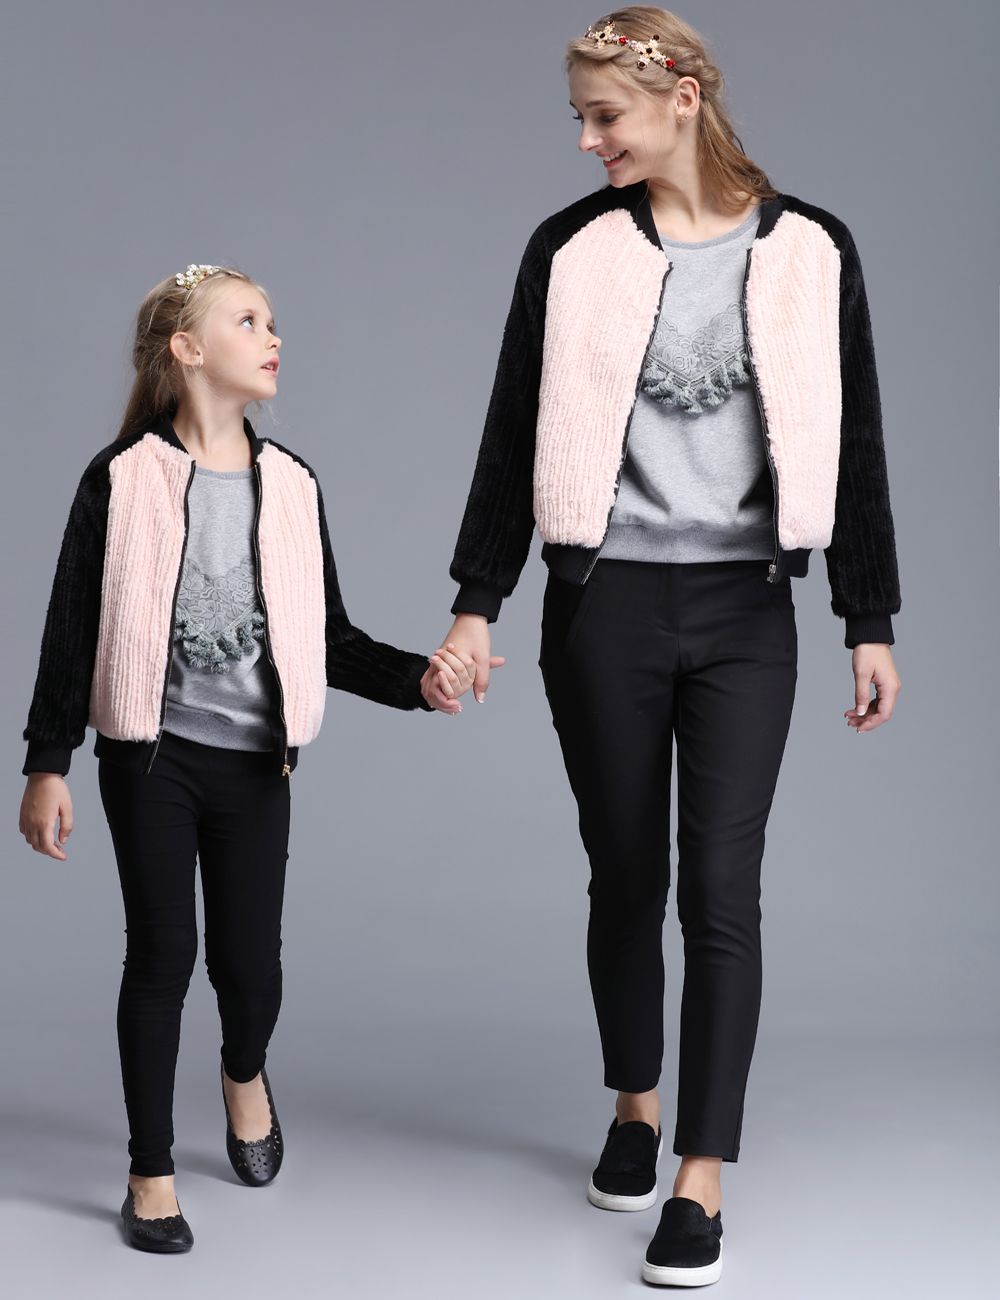 Winter New Brand Fur Long-sleeved Mother Daughter Coats Mom and Girls Thickening Fashion Family Matching Clothes Girls Jacket<br><br>Aliexpress